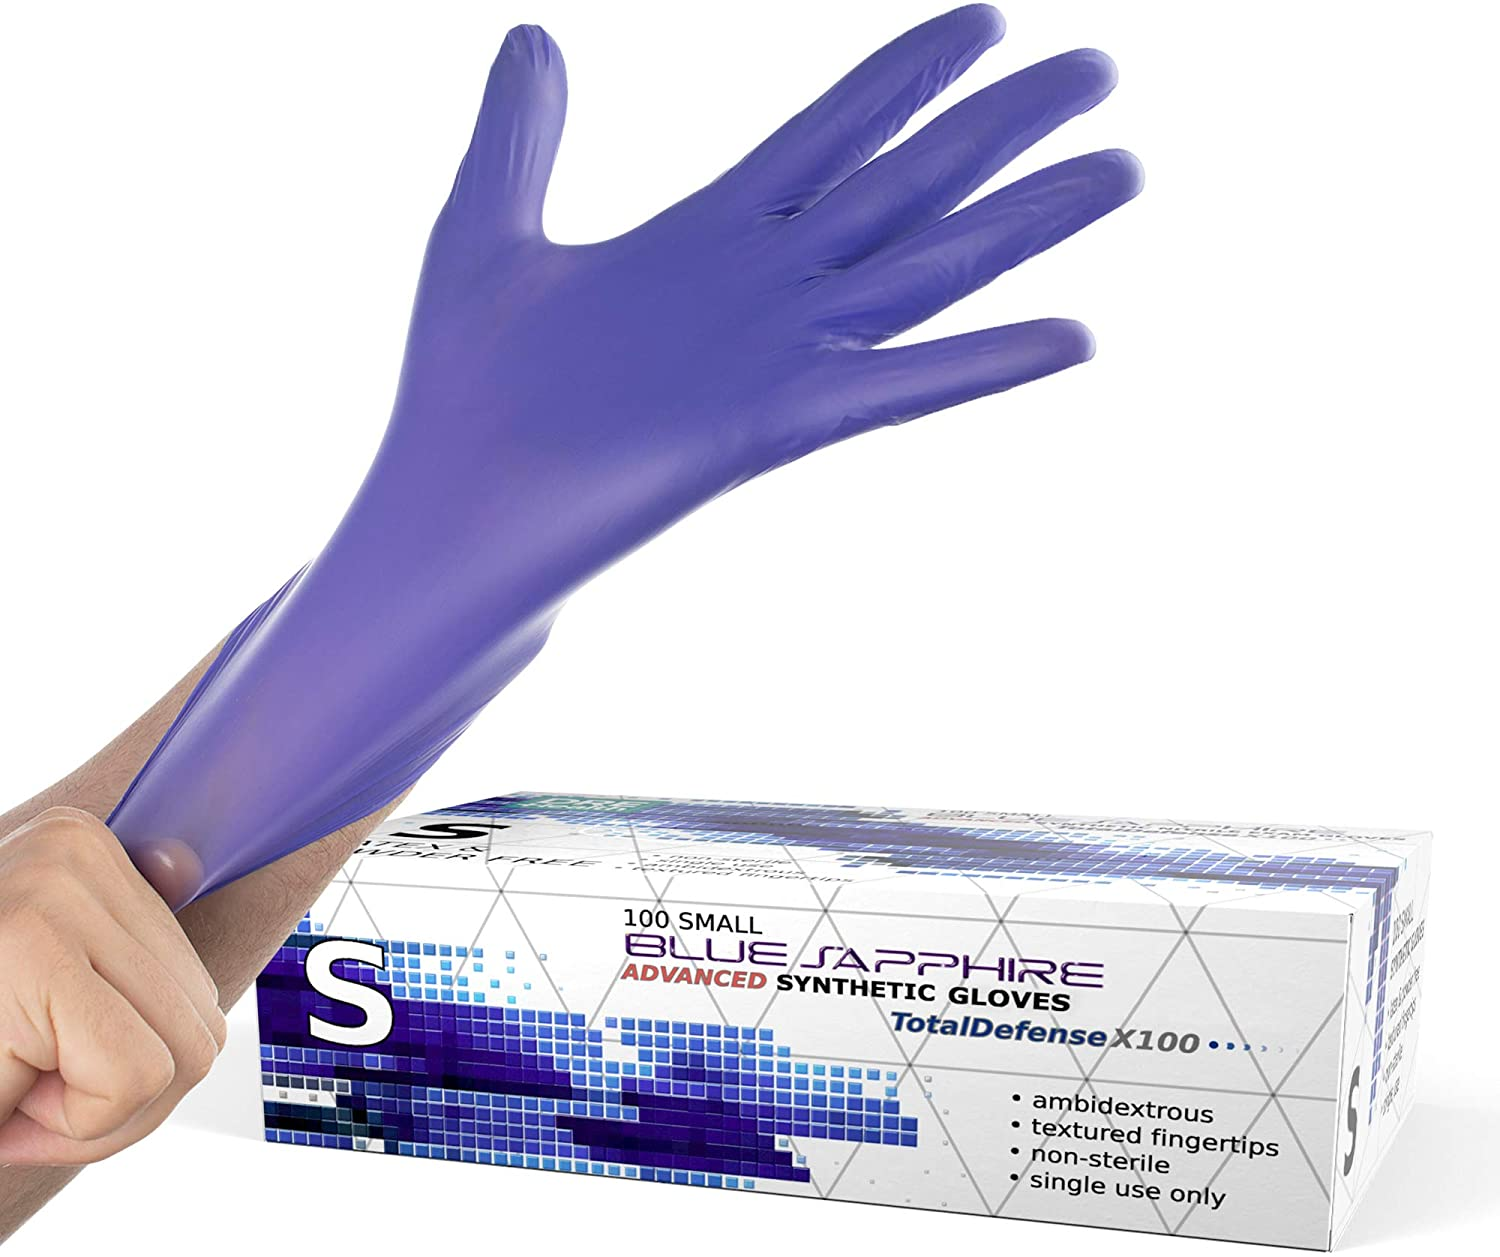 Powder Free Disposable Gloves Small - 100 Pack - Nitrile and Vinyl Blend Material